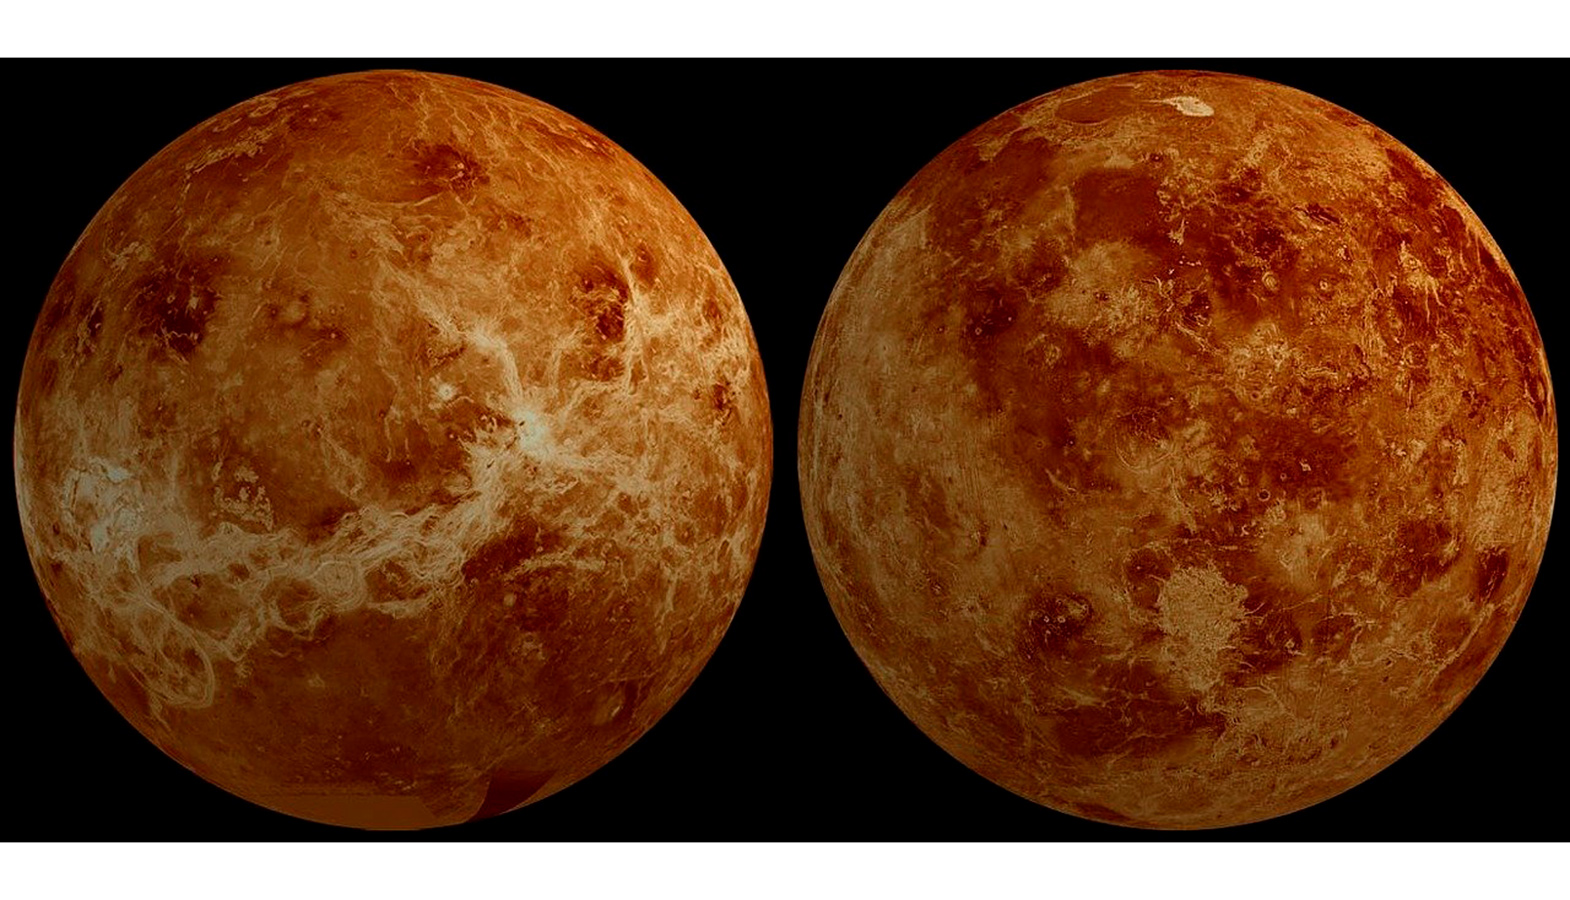 Astronomers Have Proved That There Are Active Volcanoes On The Surface Of Venus